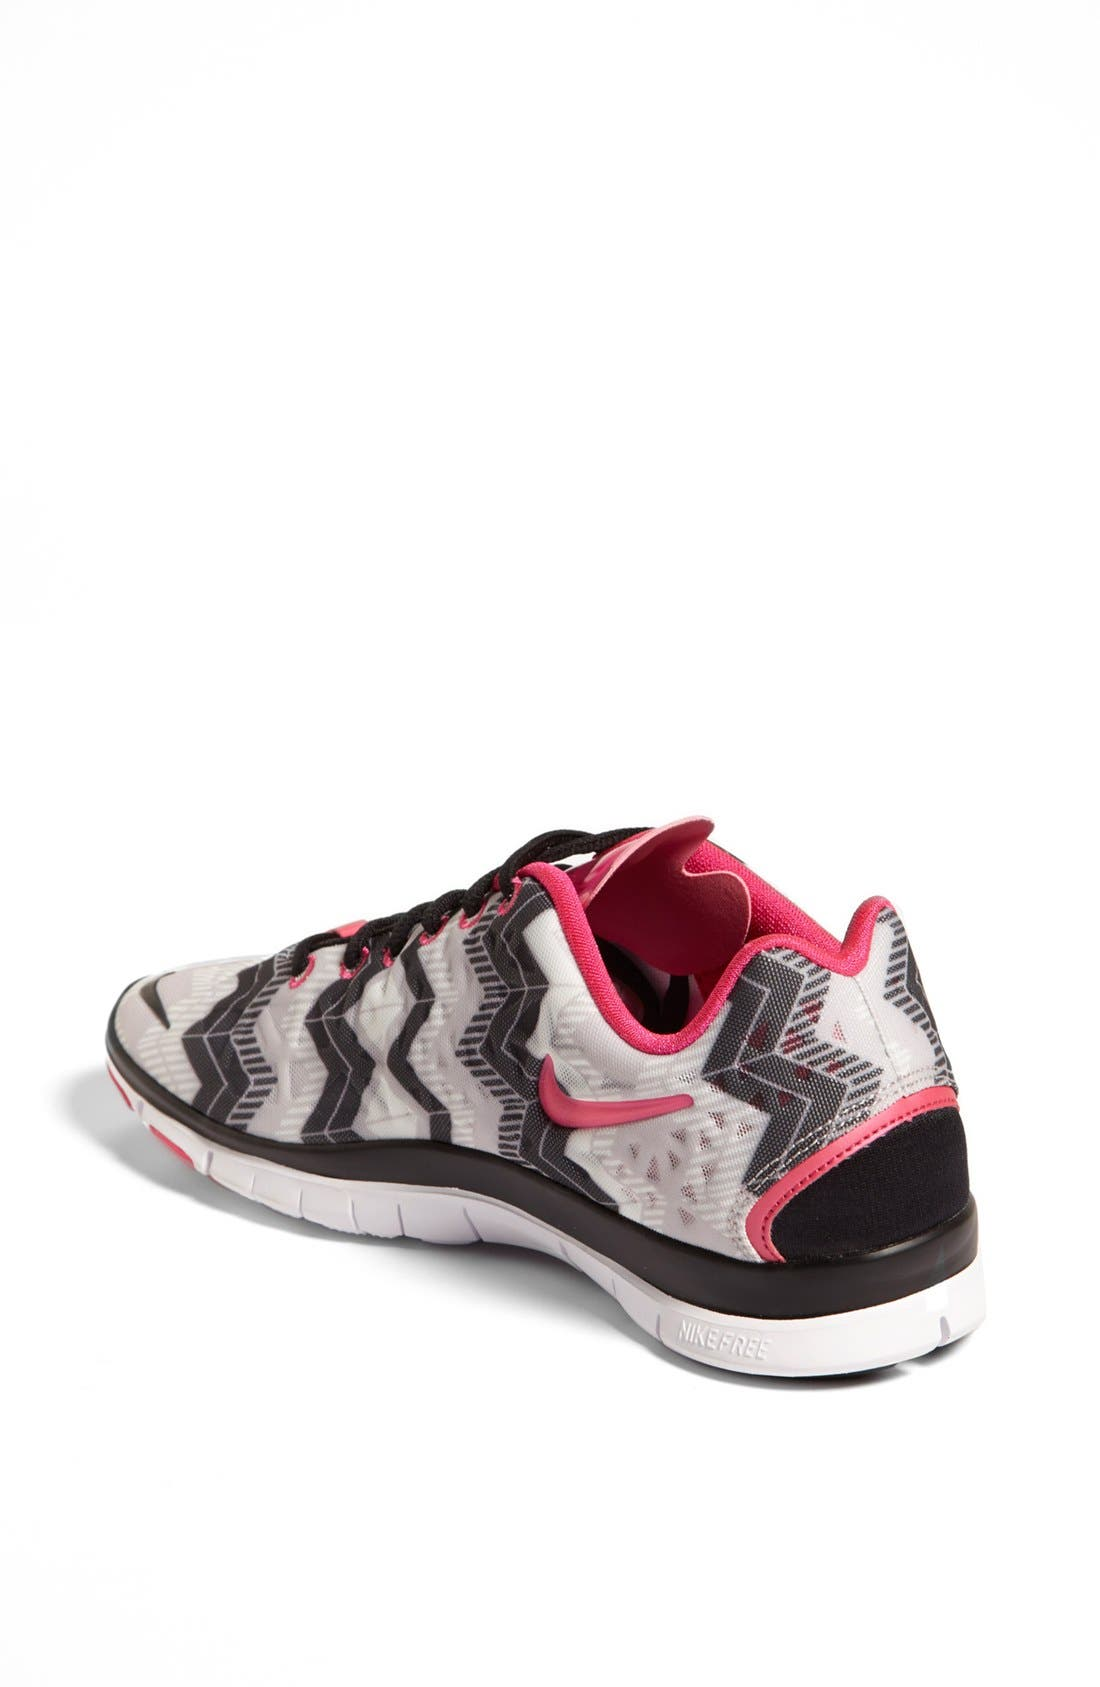 'Free TR Fit 3 Print' Training Shoe,                             Alternate thumbnail 2, color,                             Grey/ Black/ Pink Foil